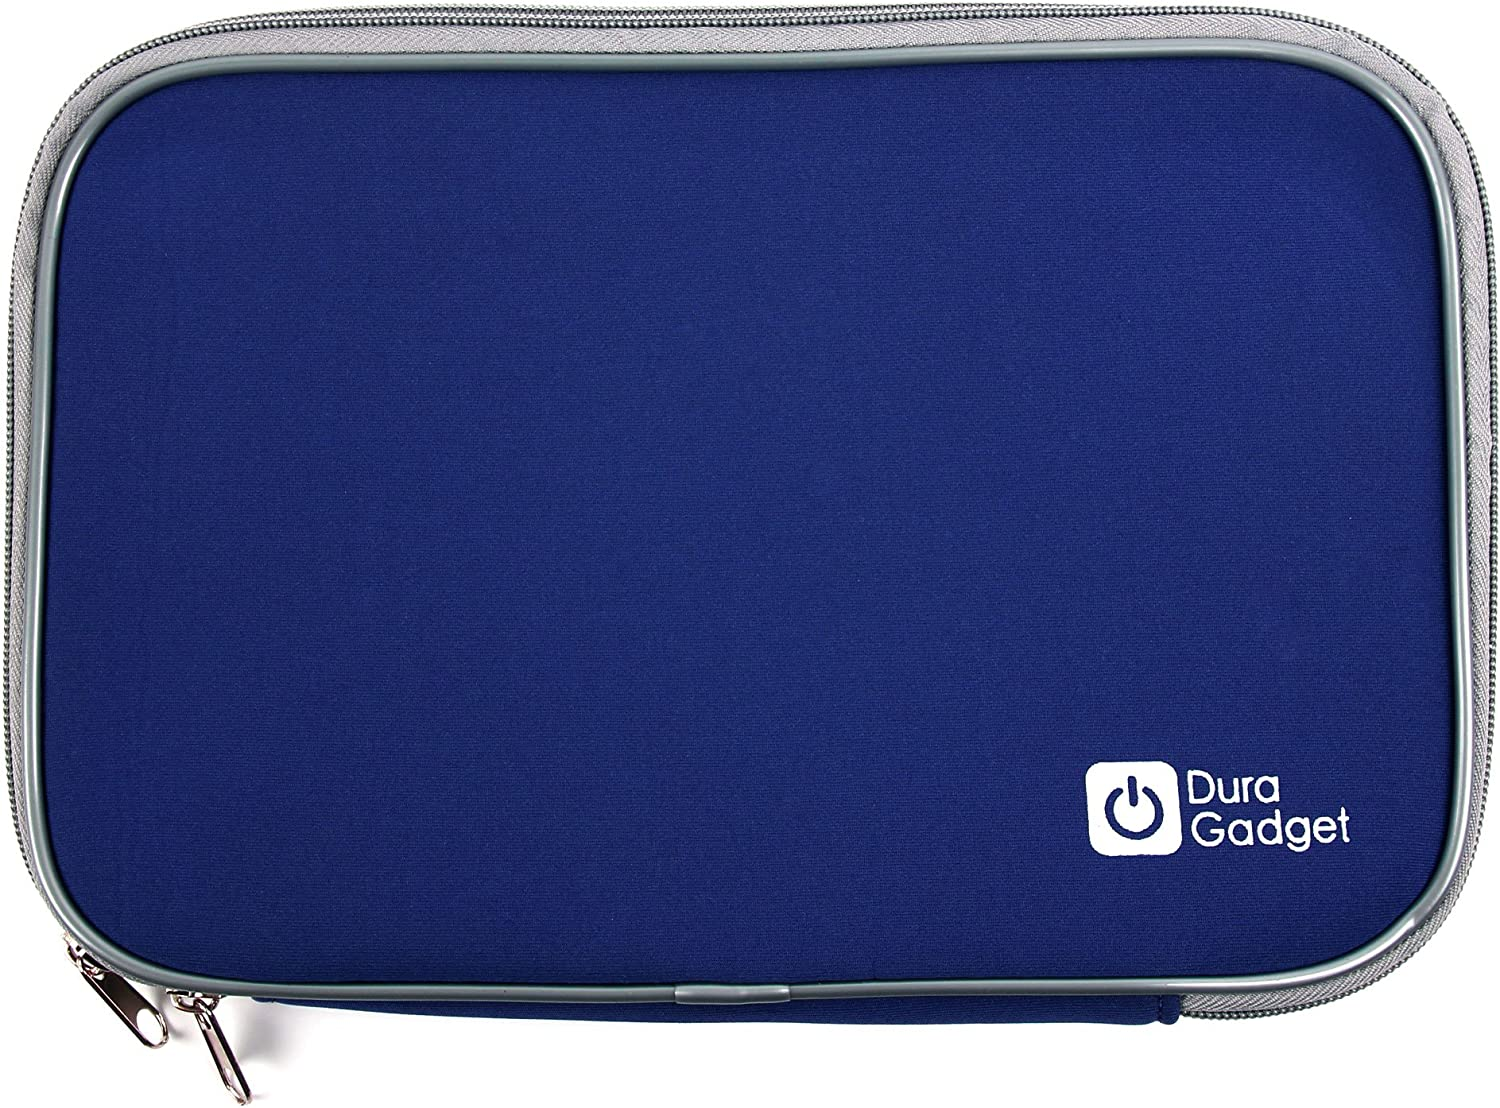 DURAGADGET Protective Blue Neoprene Sleeve - Compatible with Acer Aspire One 522   Aspire One 533   Aspire One D255   Aspire One D260 & Aspire One Happy